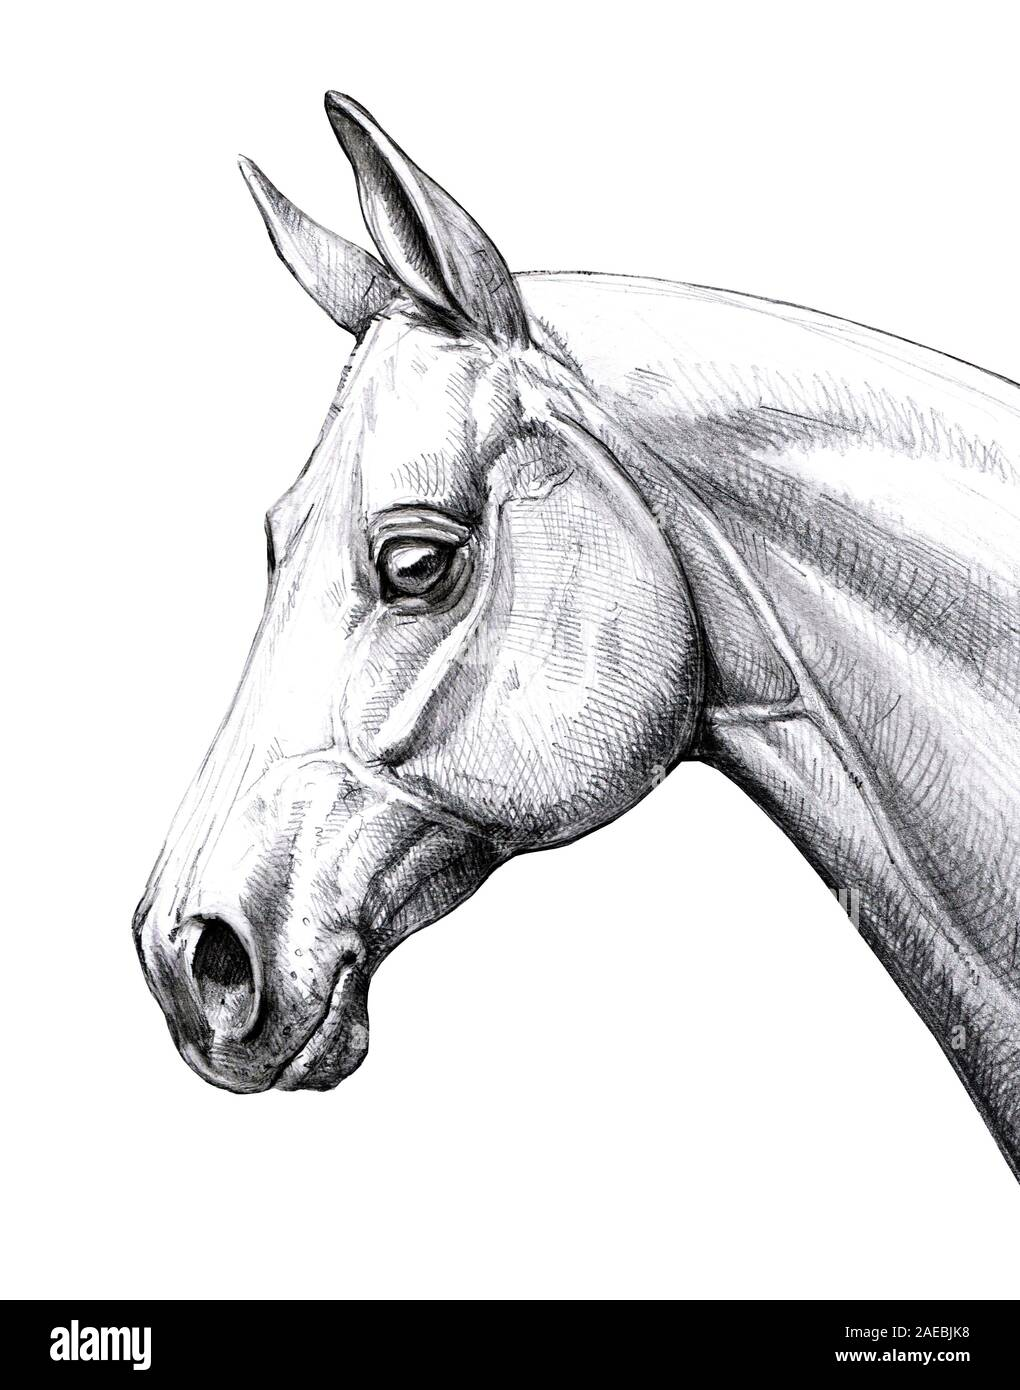 Horse Head Drawing High Resolution Stock Photography And Images Alamy